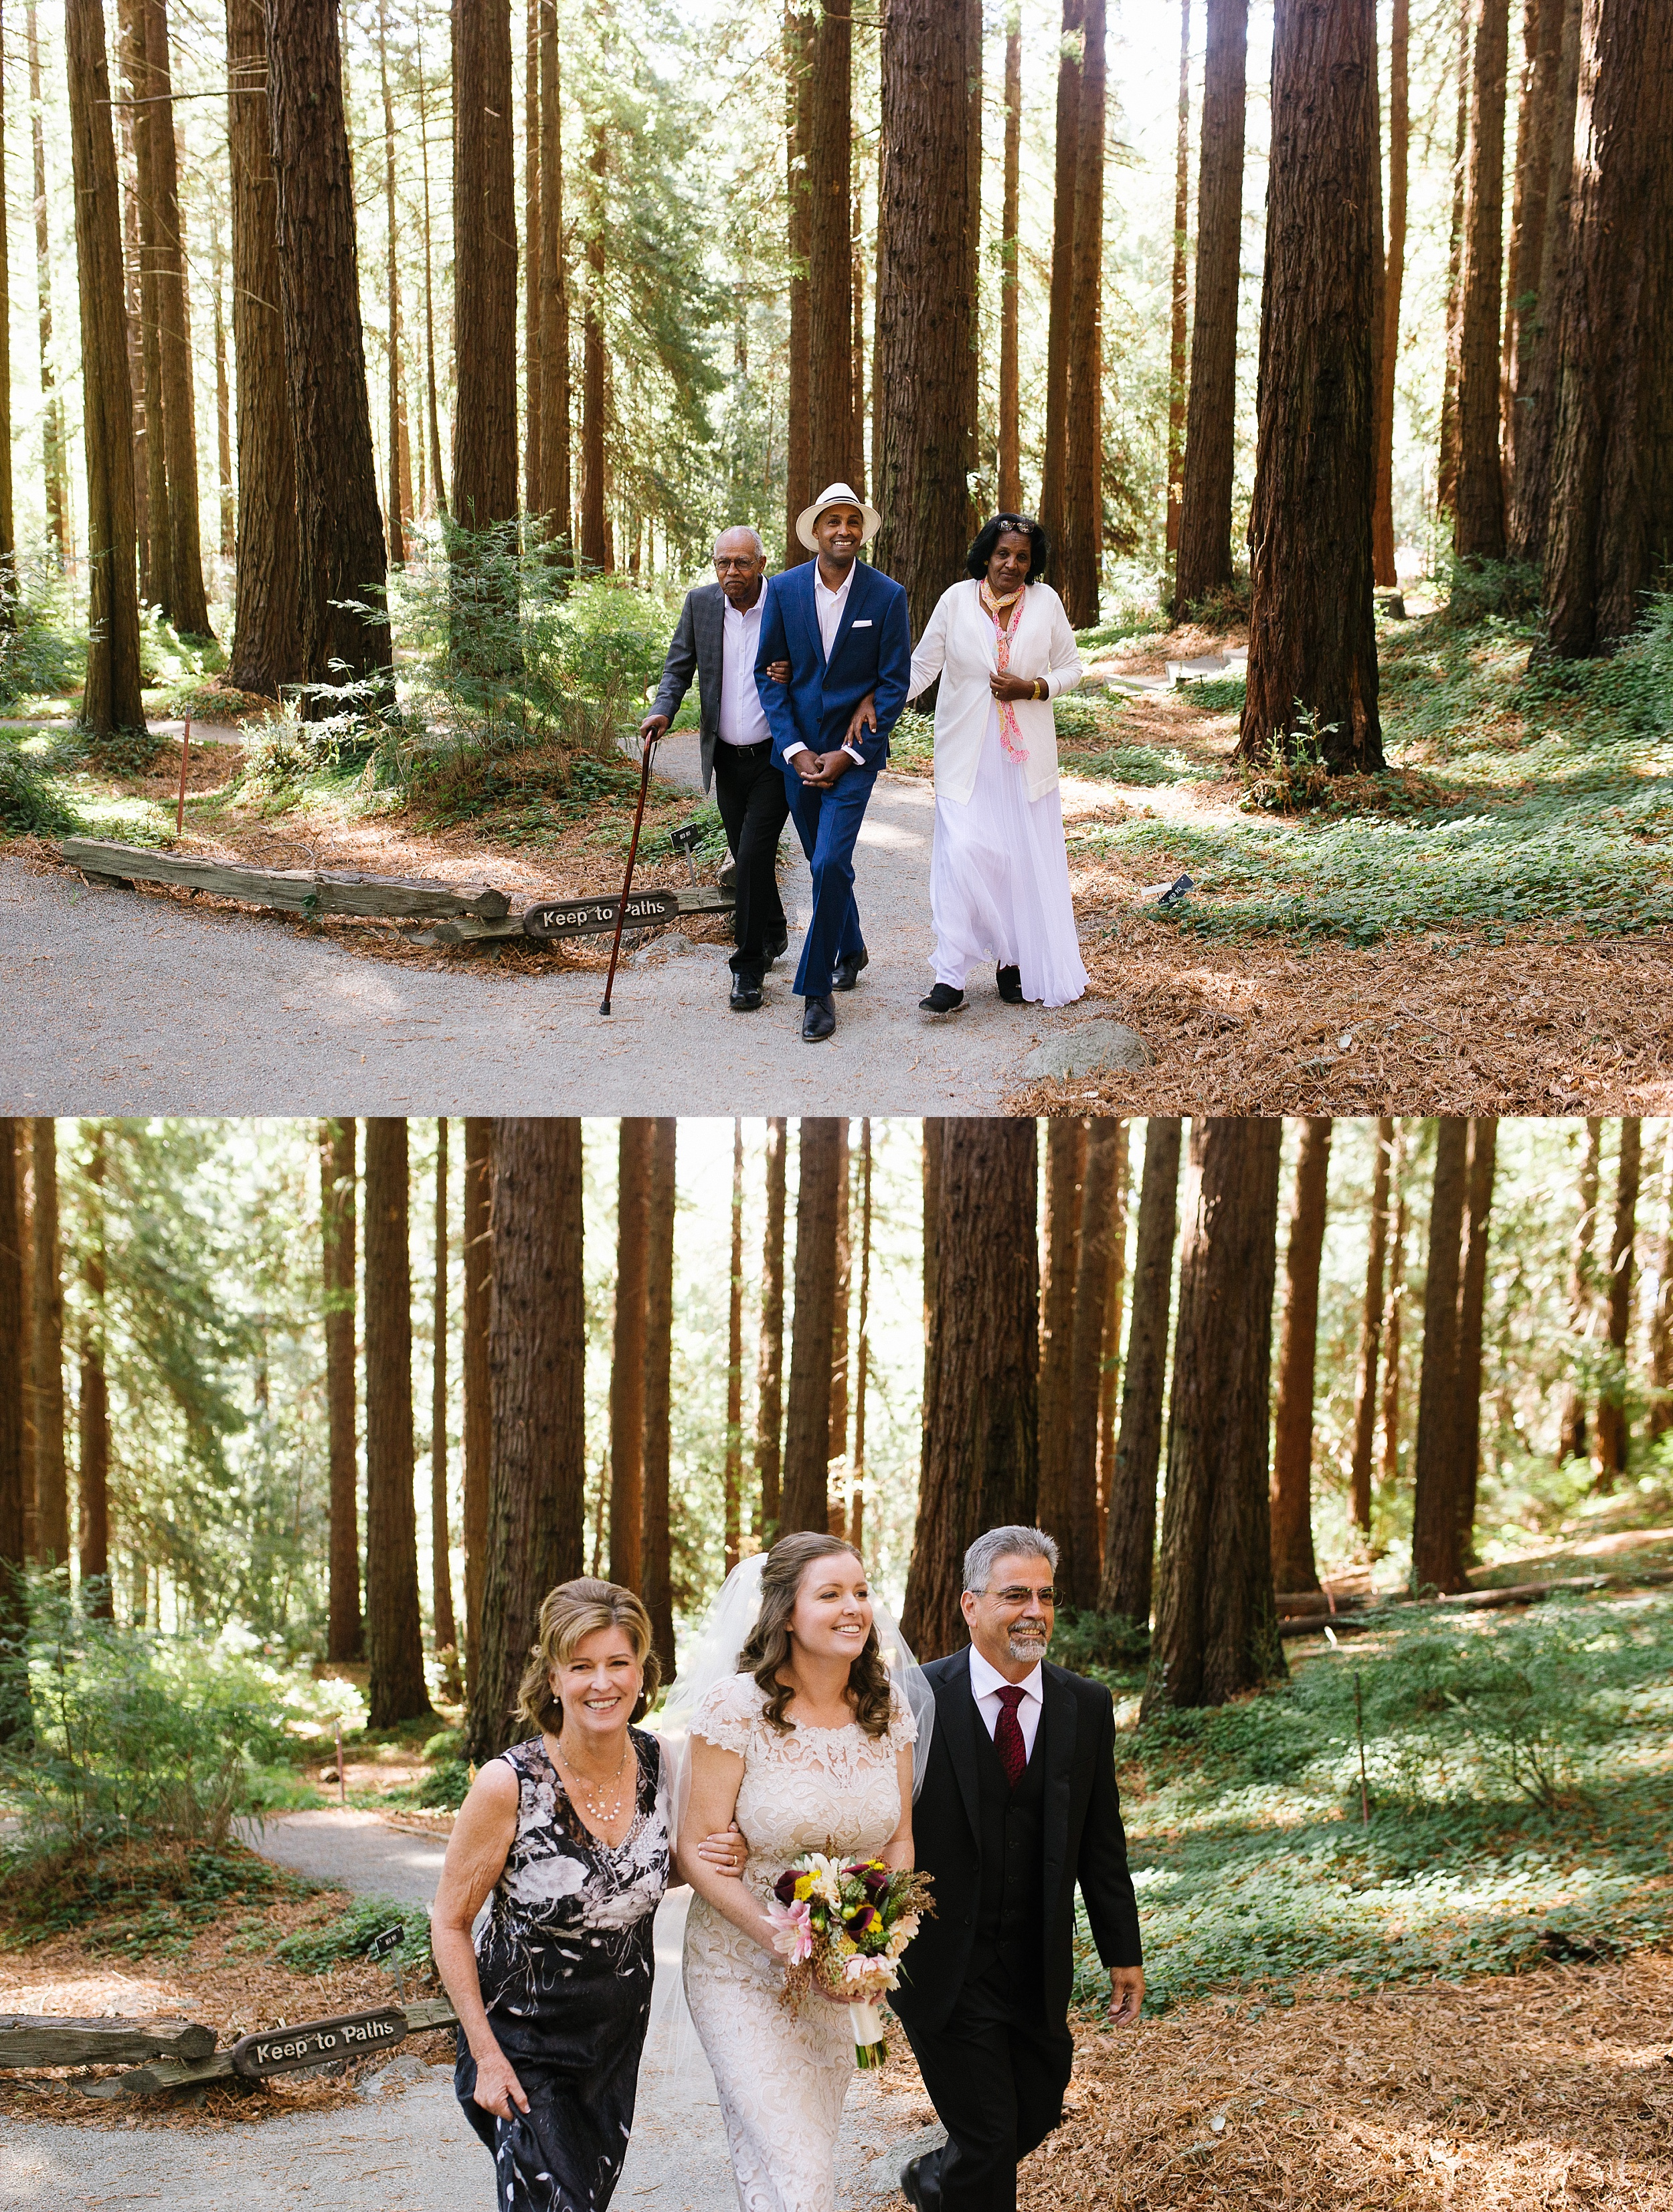 ucberkeley_botanical_redwoods_outdoor_wedding_jennyrez_cdp_0011.jpg